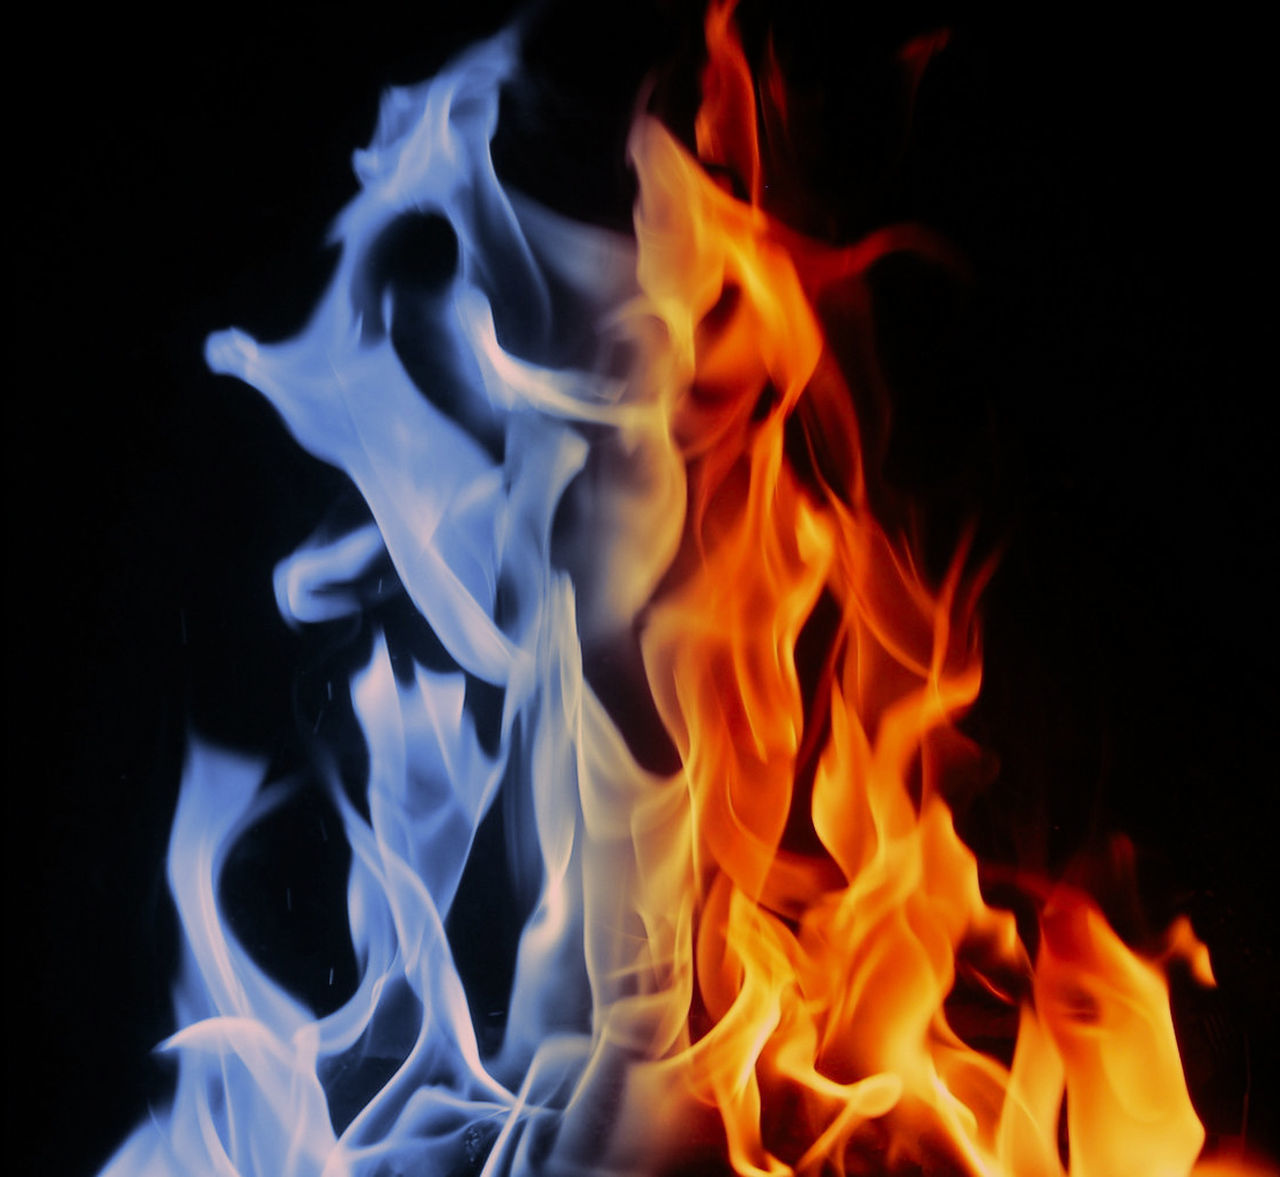 burning, flame, close-up, black background, no people, motion, night, heat - temperature, outdoors